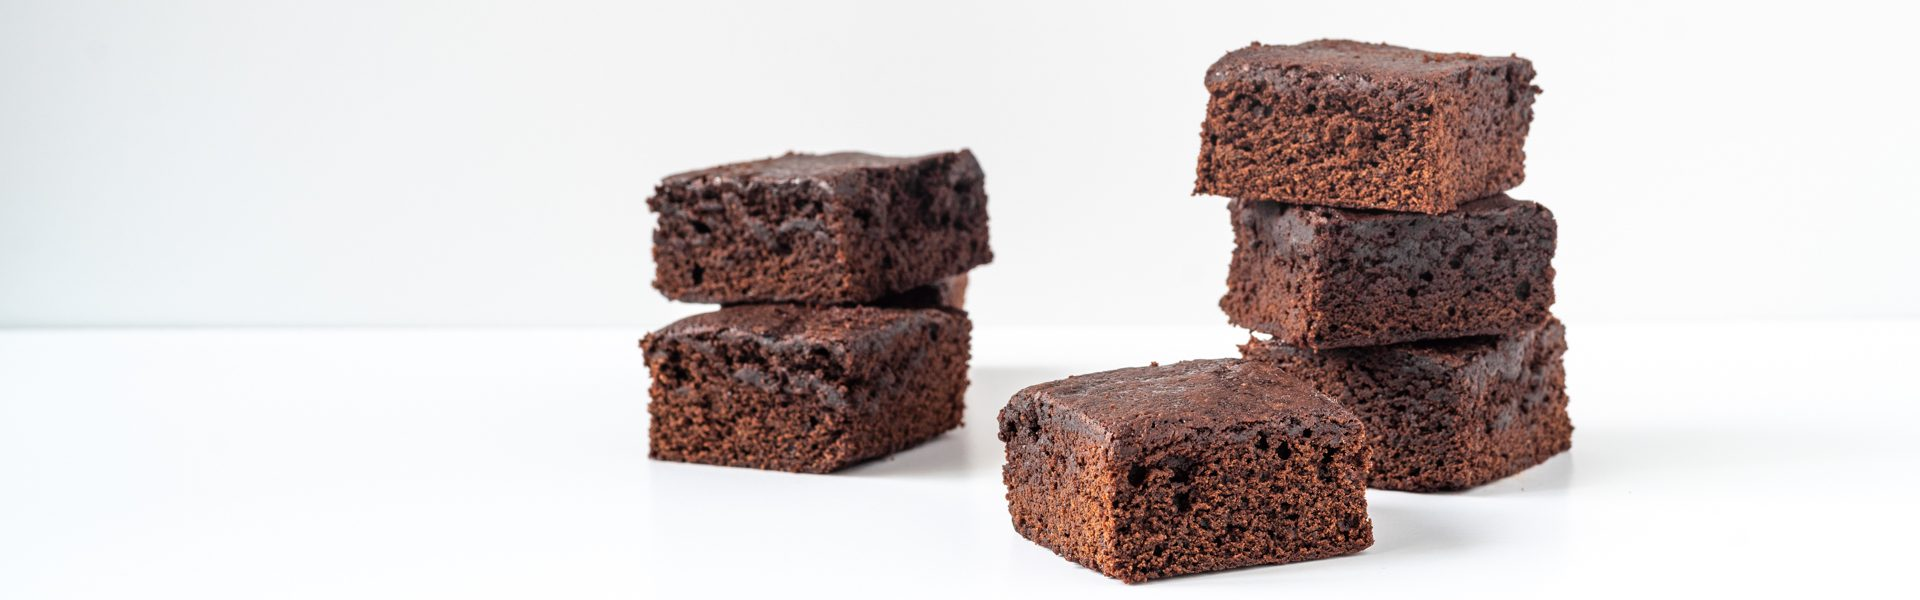 How to make fudgy brownies with less sugar and fat with Sunsweet prune puree and prune juice concentrate